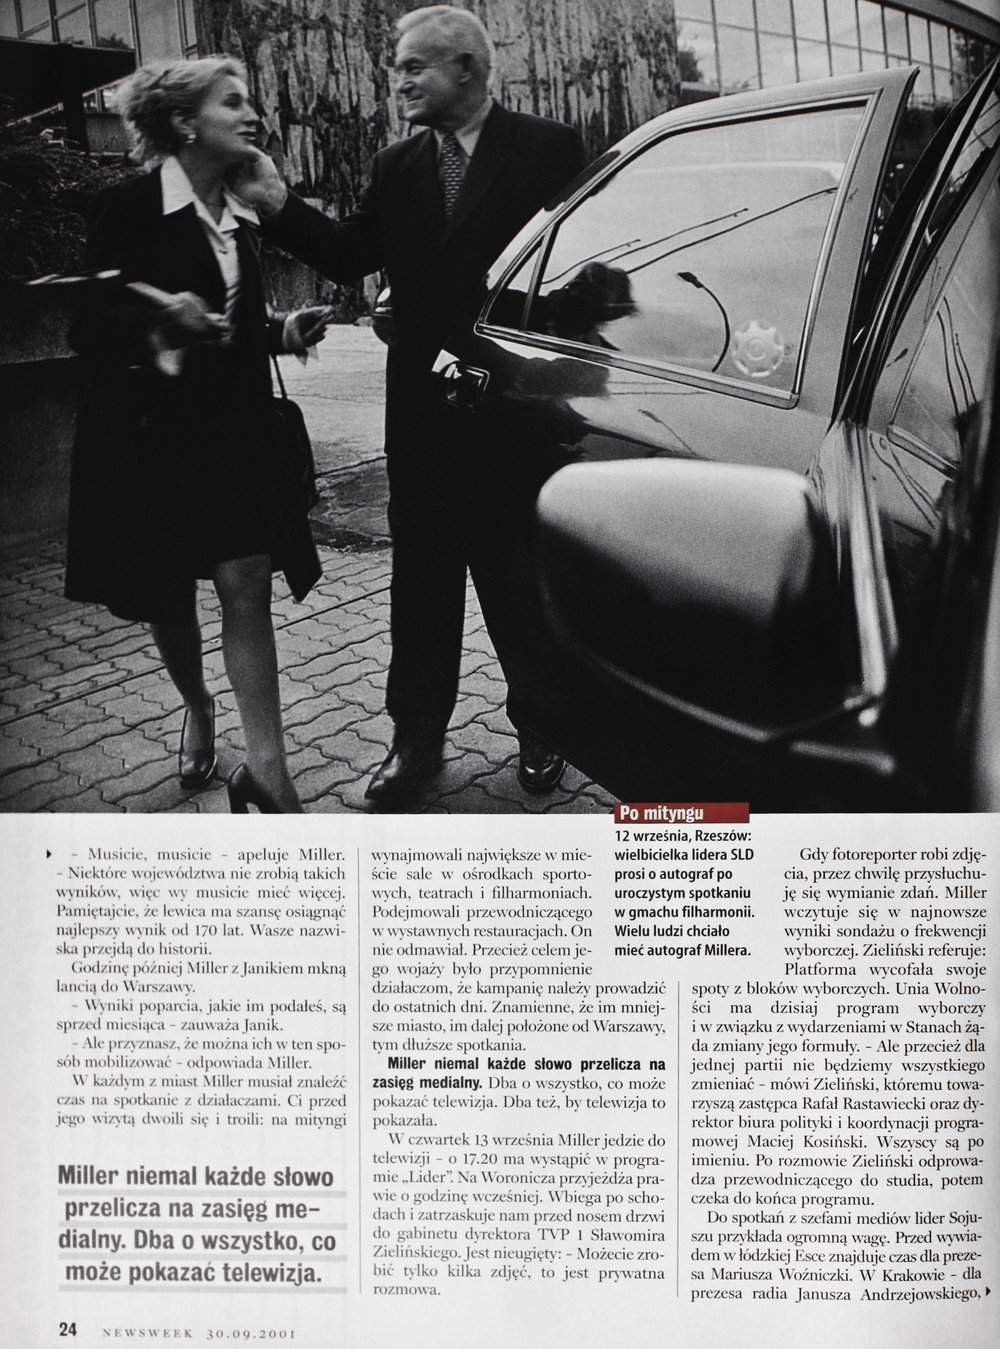 NEWSWEEK 2001 - CAMPAIGN ELECTION SLD